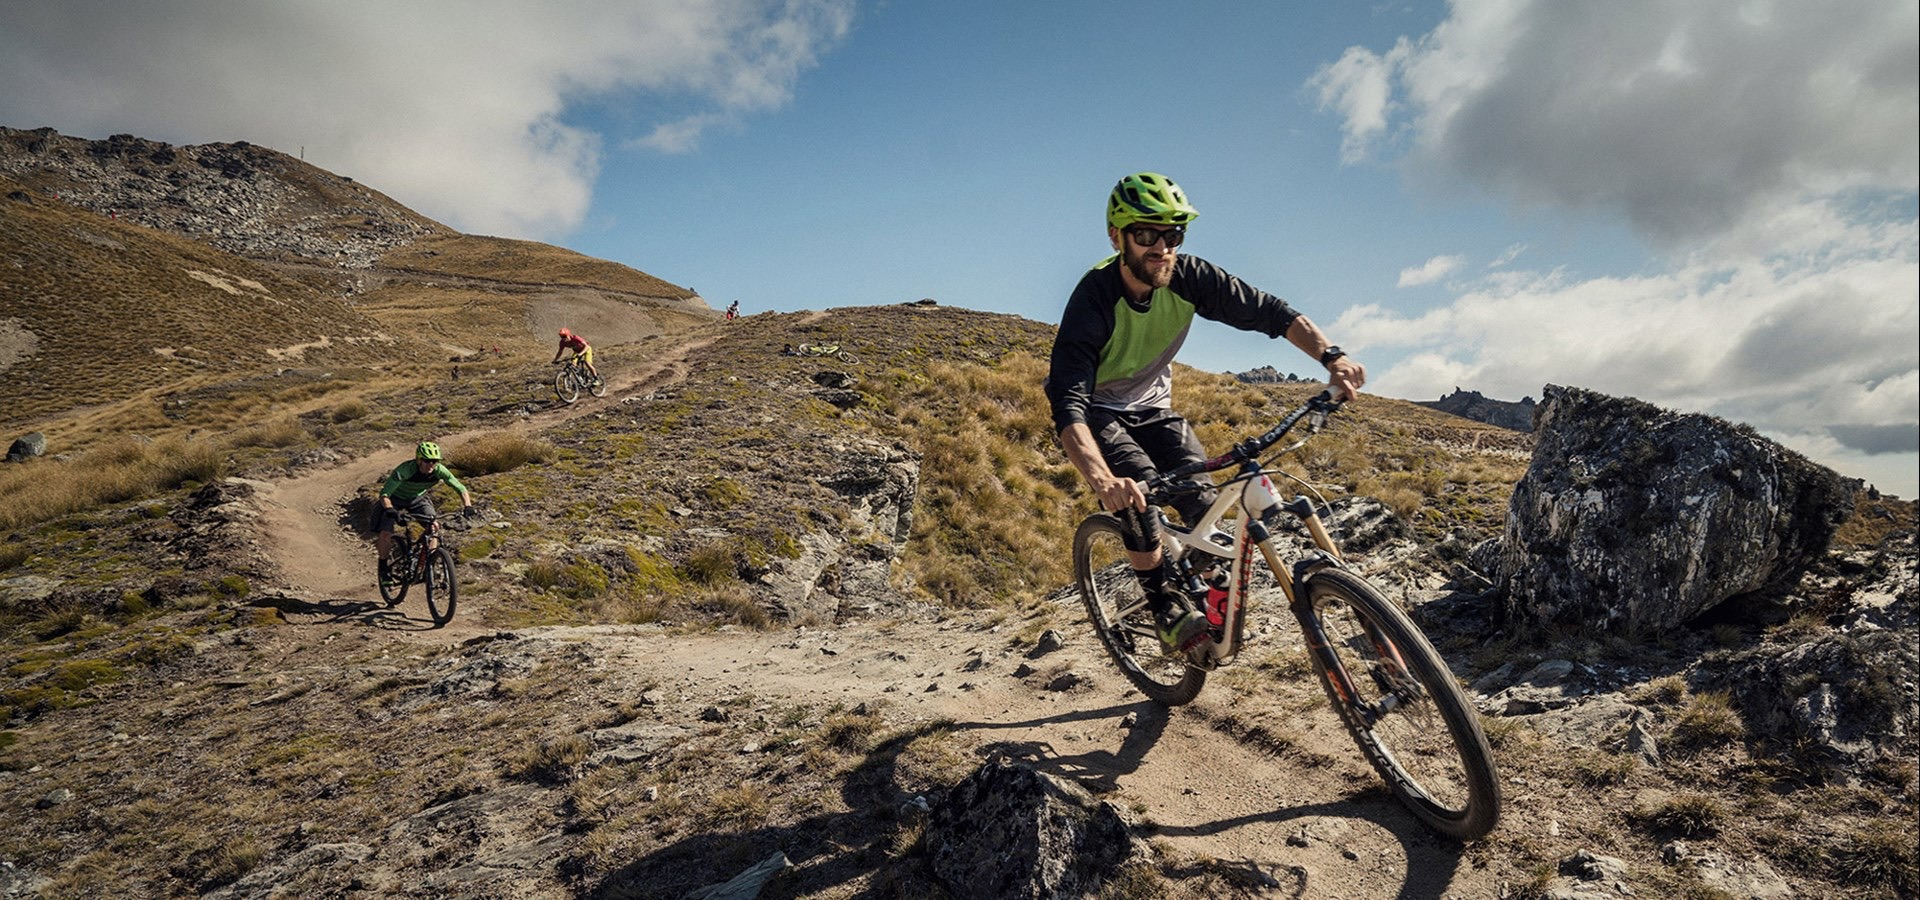 3c6aa0c5409 On your way to Queenstown, you will also come across the Cardrona Bike Park  with its steep slopes as well as the famous Rude Rock trail at Coronet Peak!